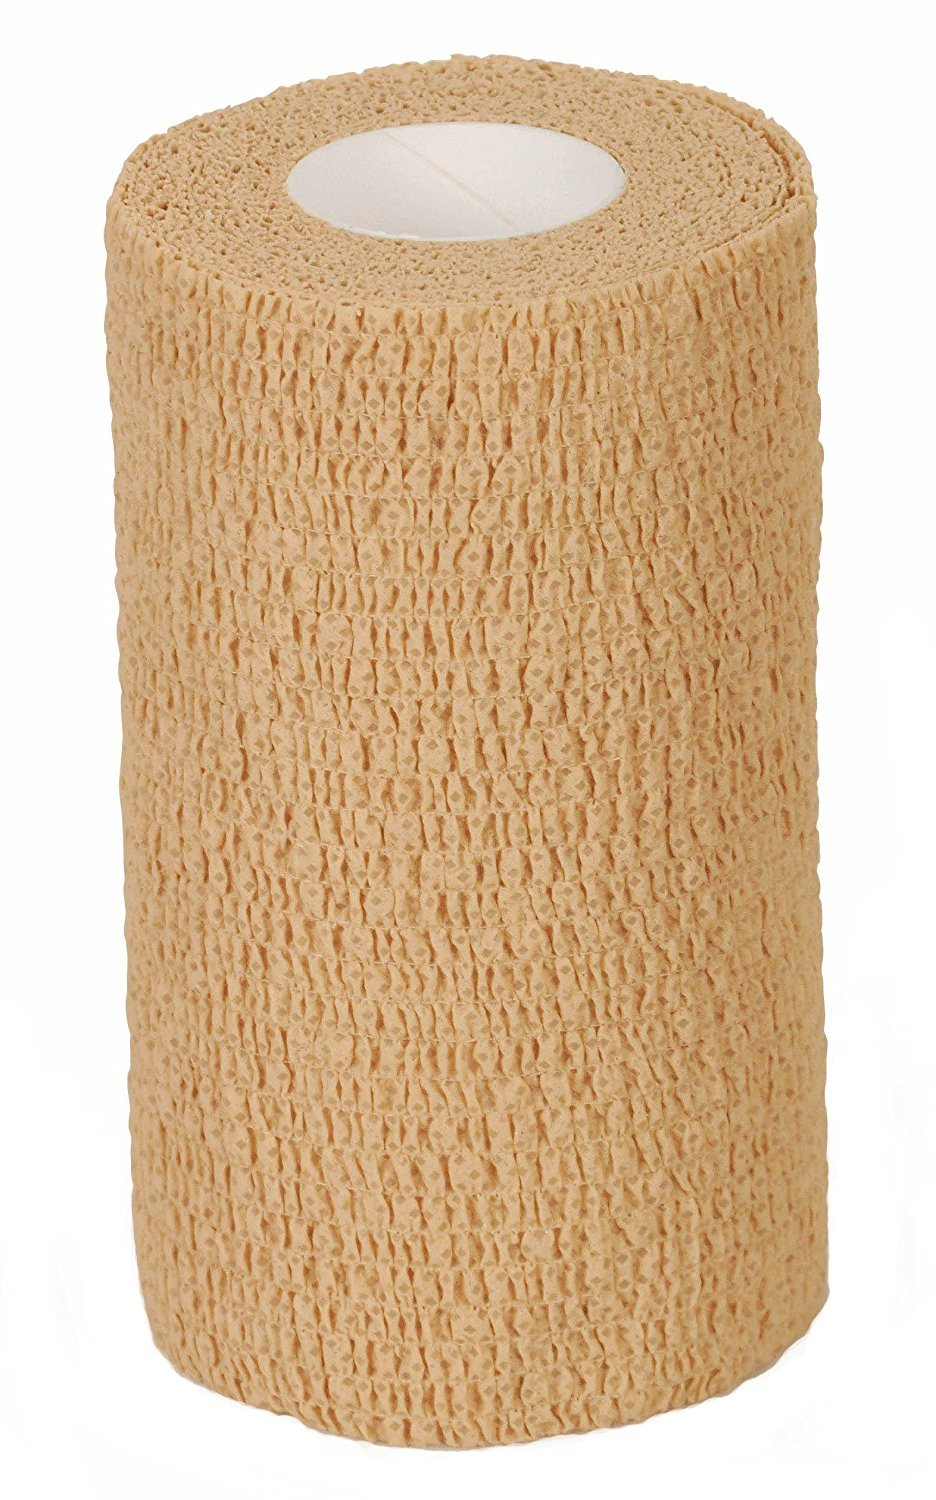 High Quality Caring Self-Adherent Cohesive Wrap Bandage with Latex, Non-Sterile, 4